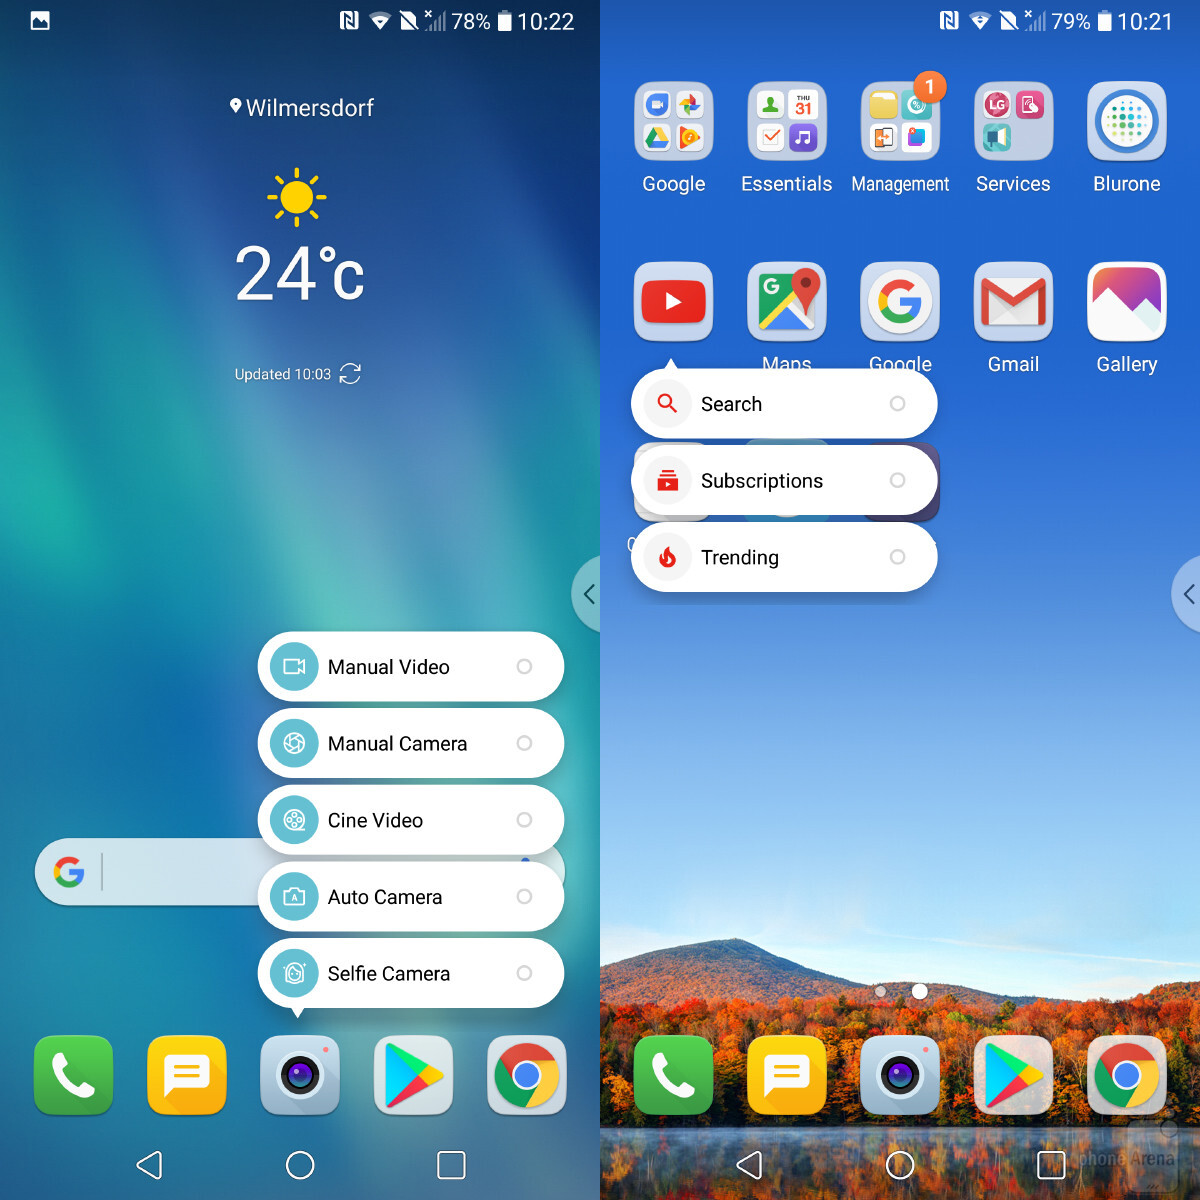 LG V30 new UI features: what we've found so far! - PhoneArena